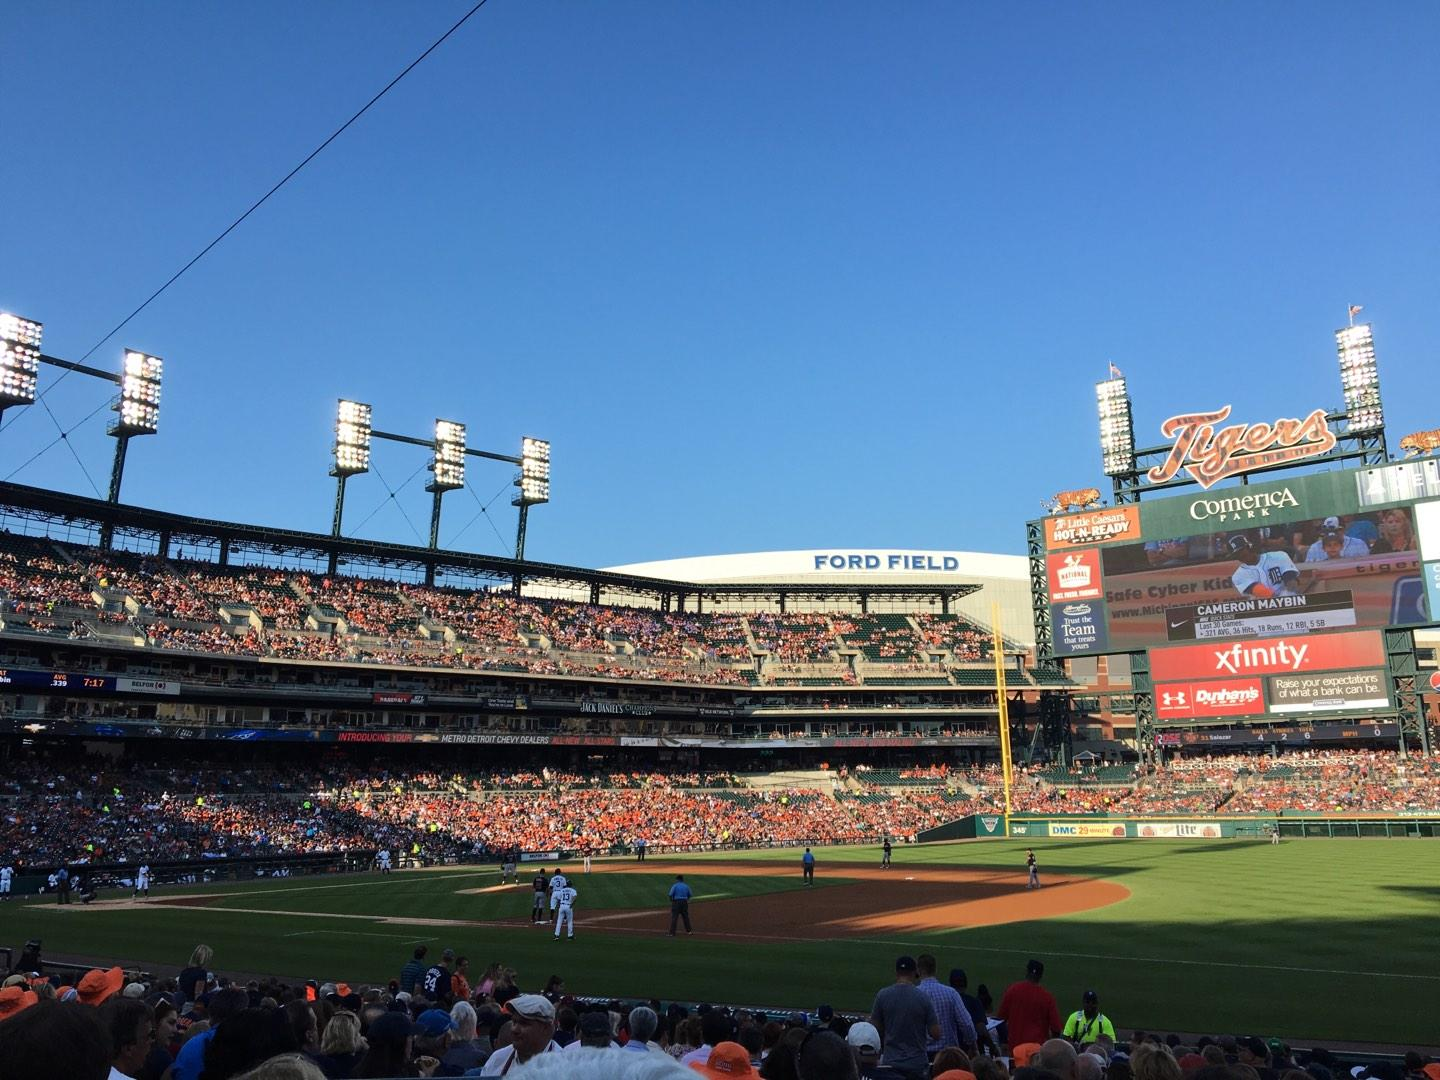 Comerica Park Section 117 Row 23 Seat 19